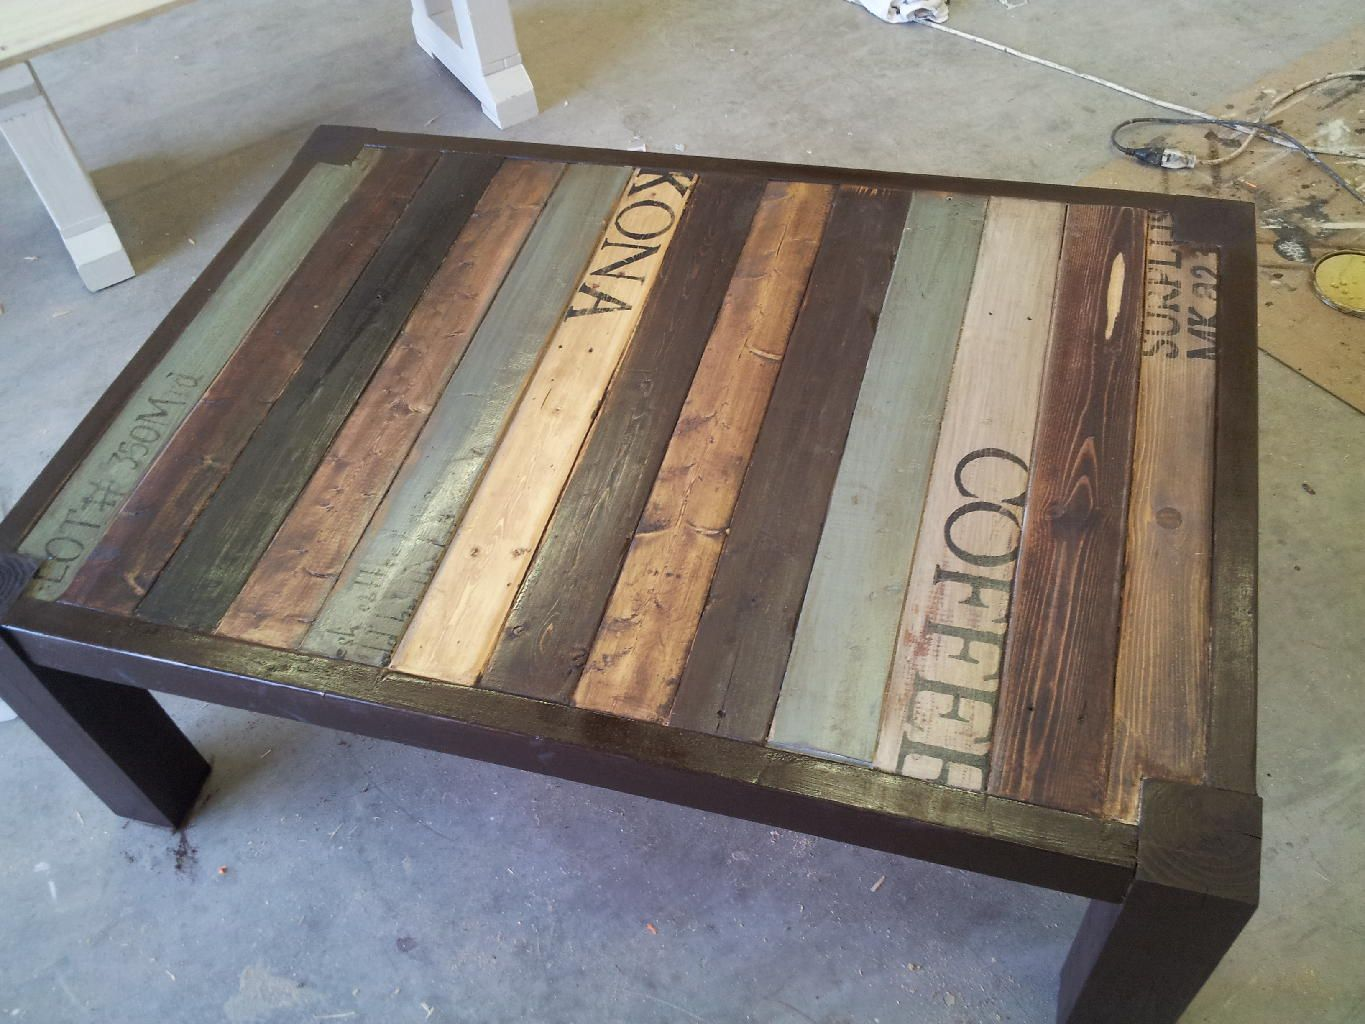 Painted pallet coffee patio ideas pinterest for Painted pallet coffee table